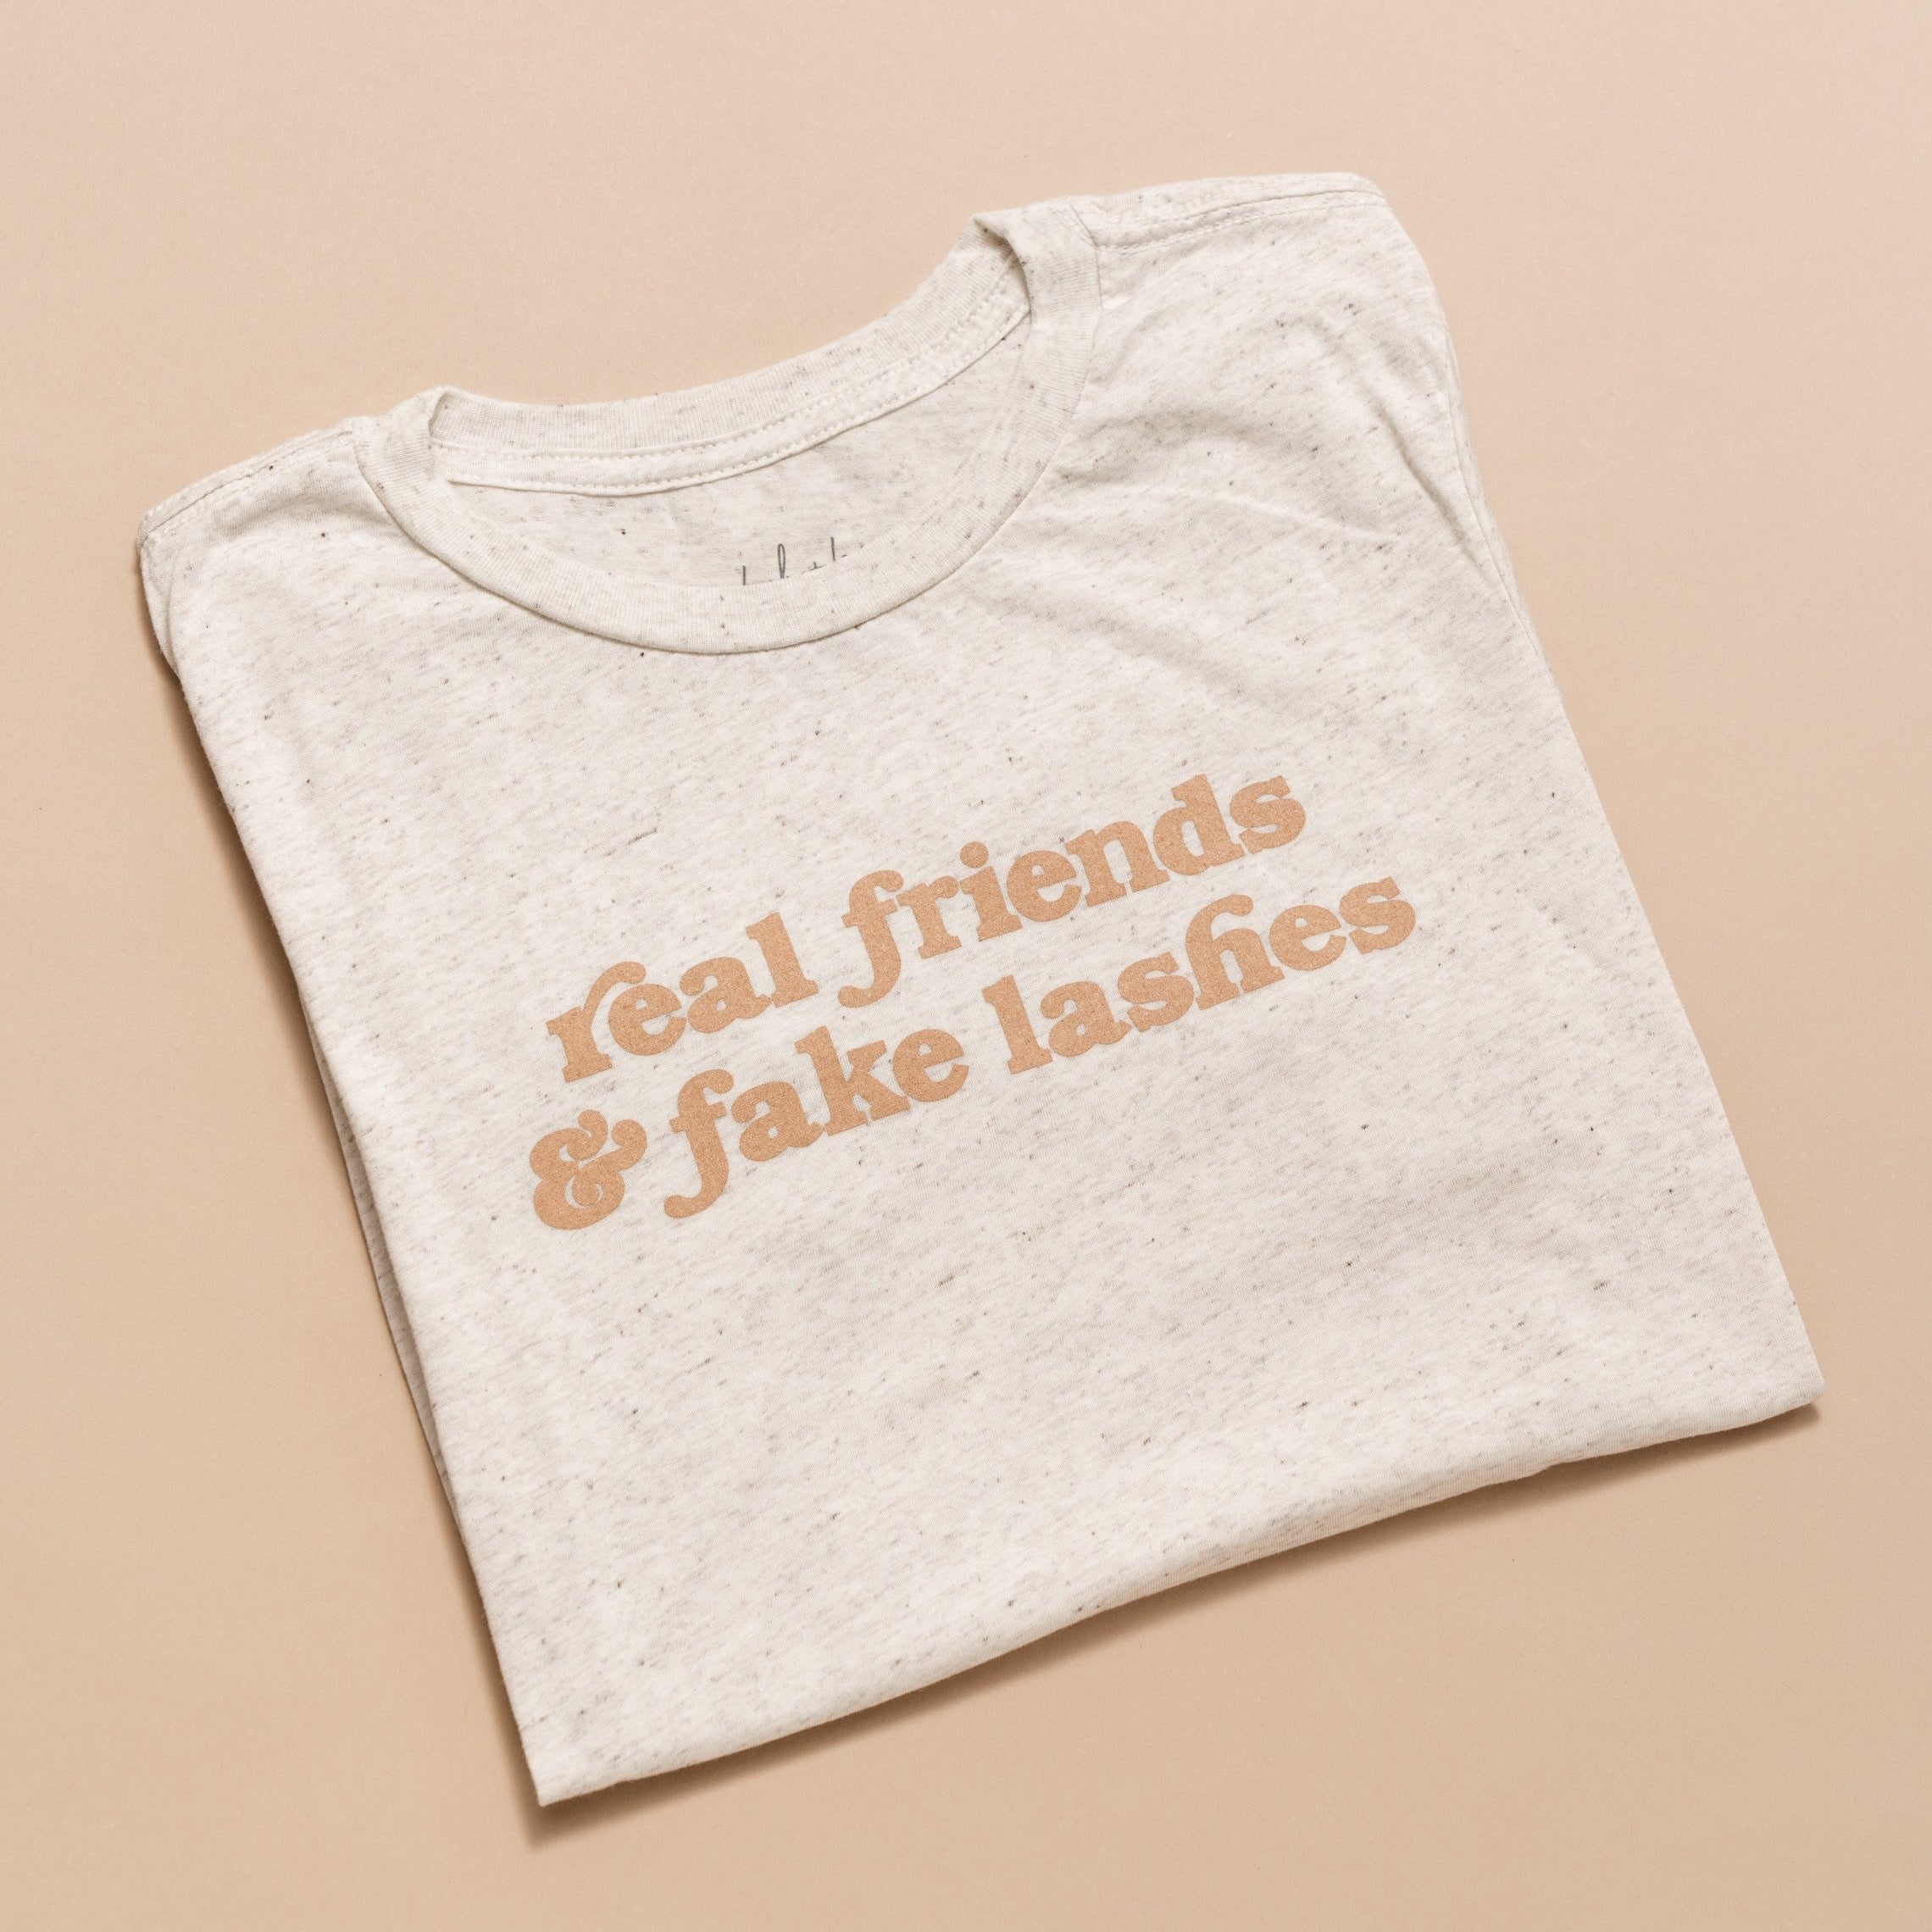 Tan Real Friends & Fake Lashes Tee - SMALL